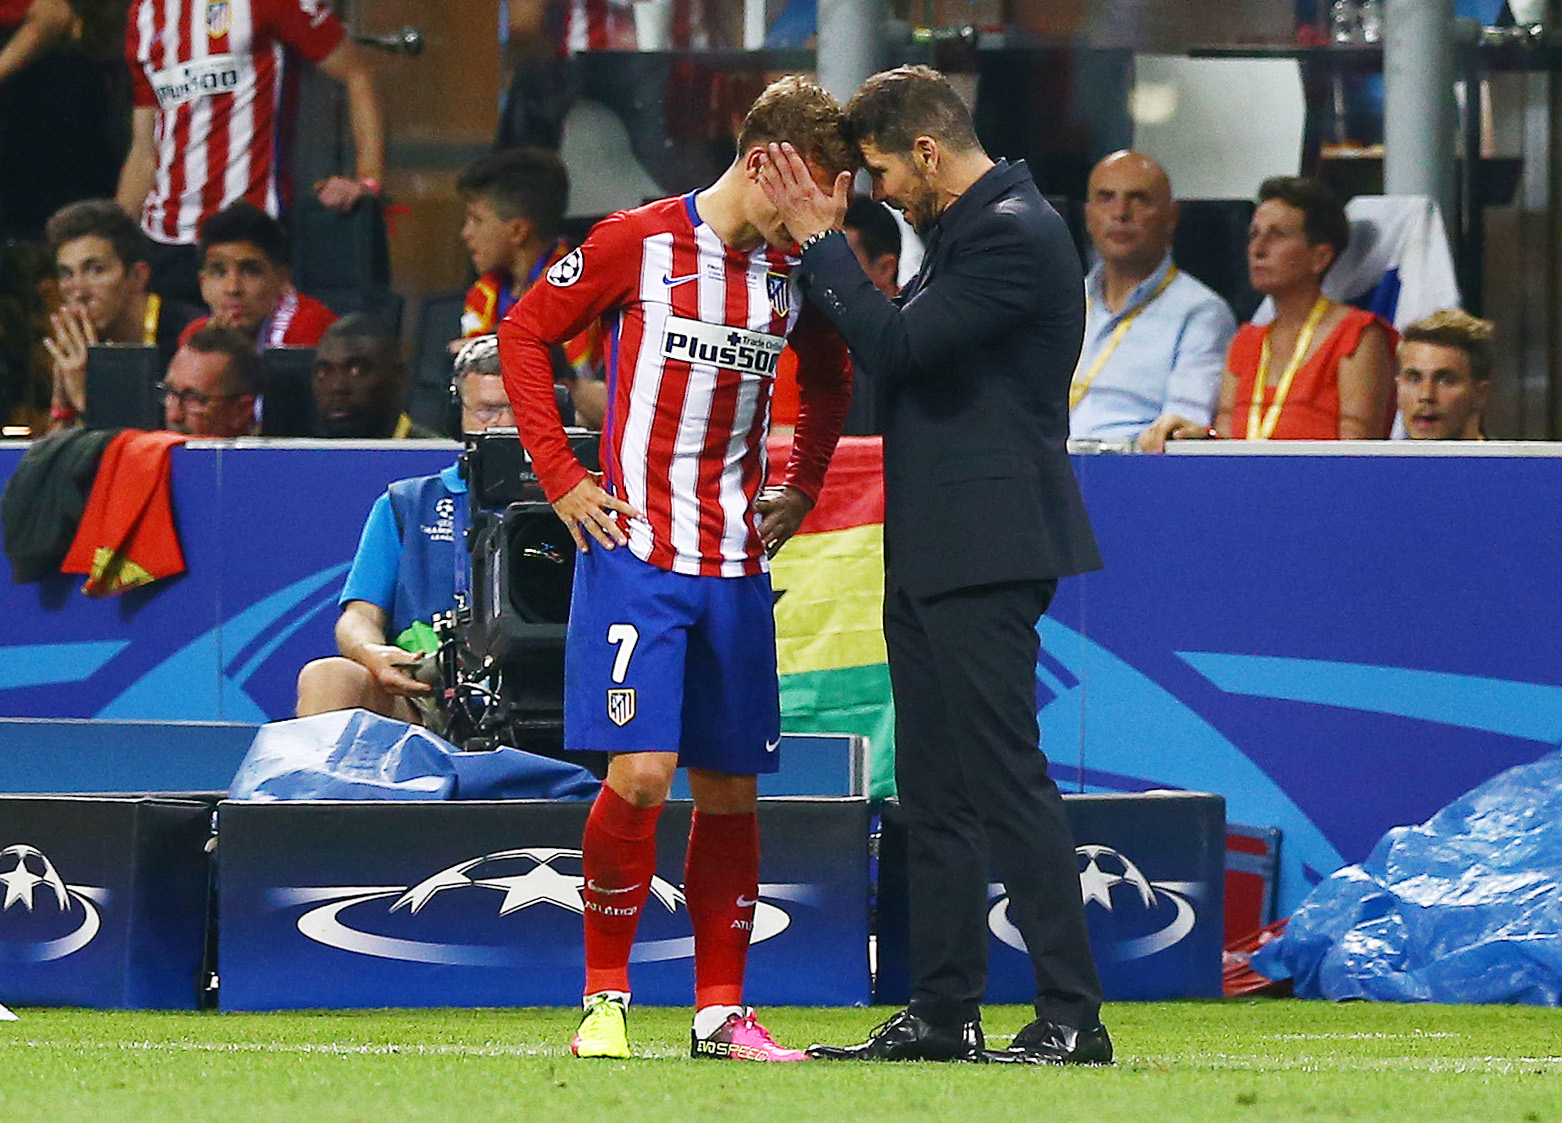 Football - Transferts - Le journal du mercato : Simeone ne lâche pas Griezmann